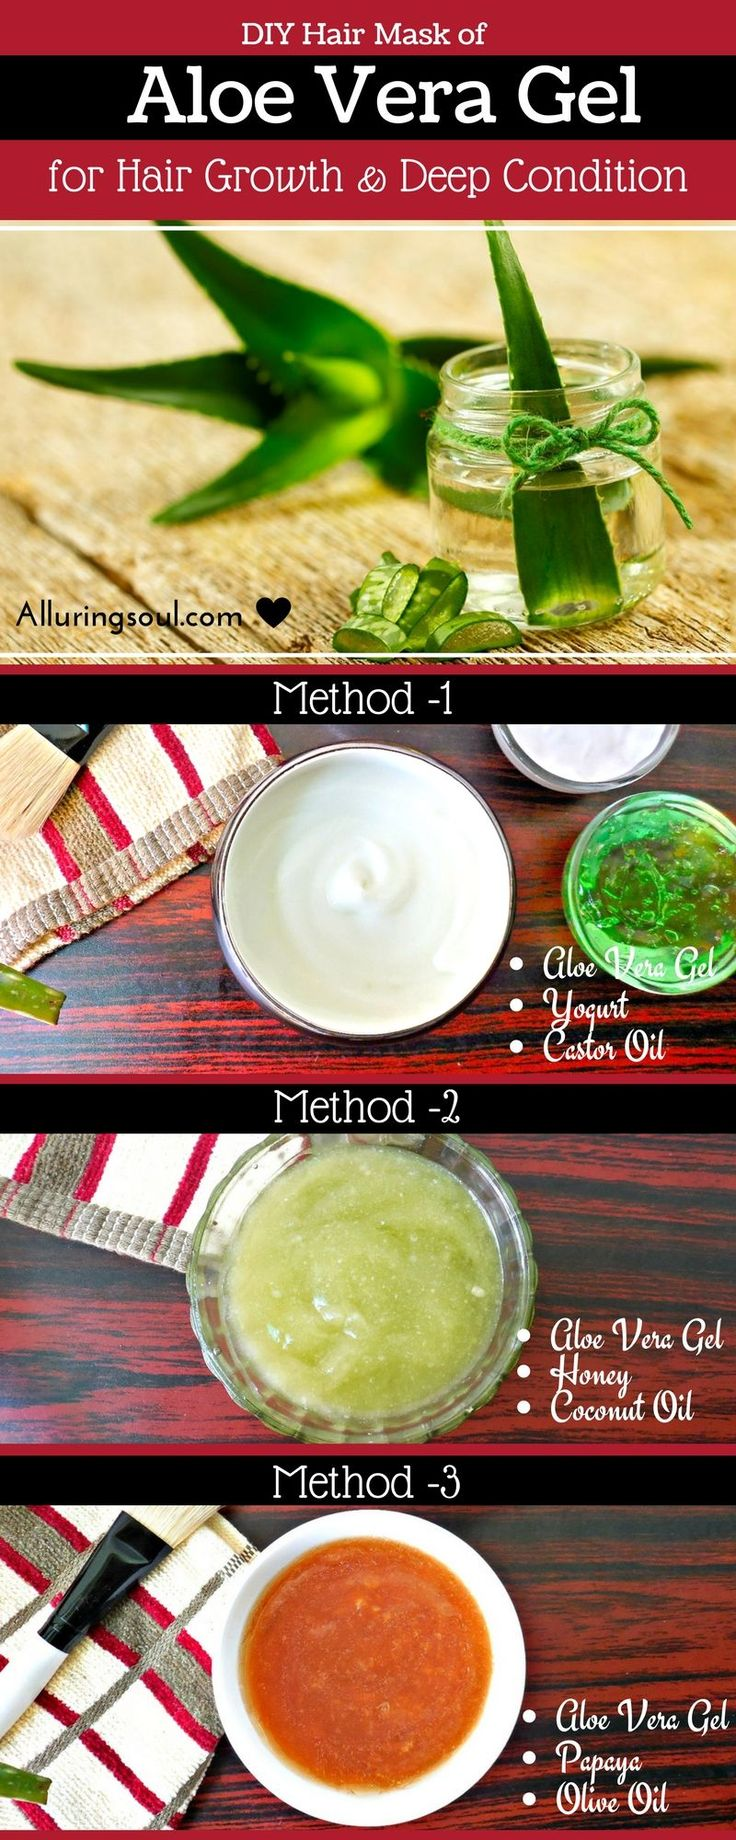 Hair mask of Aloe Vera Gel is great for hair growth and also as a effective deep...